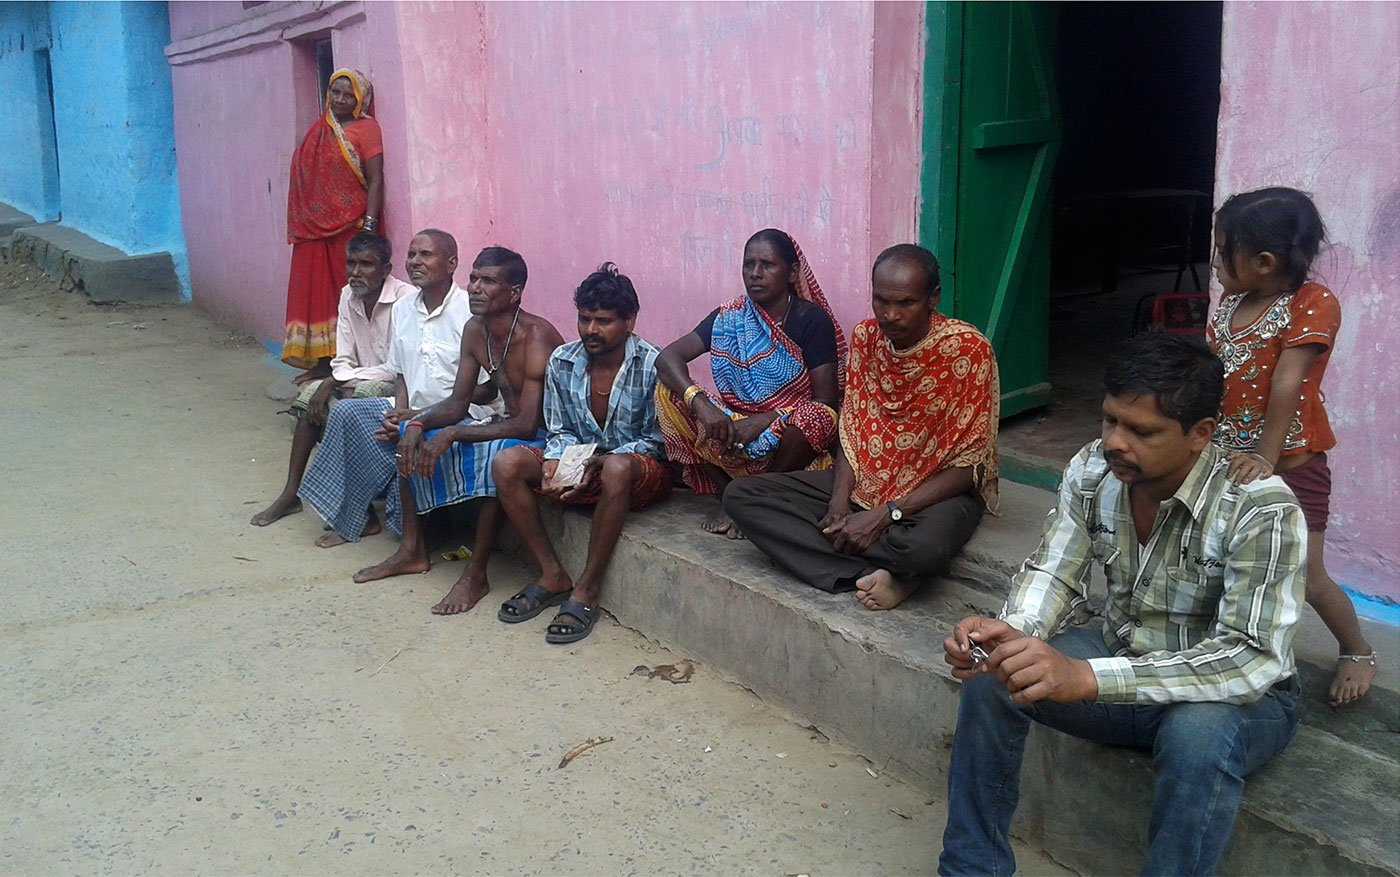 03-JANJGIR-CHANPA-2-SK-Chhattisgarh Farmers are on the Brink.jpg